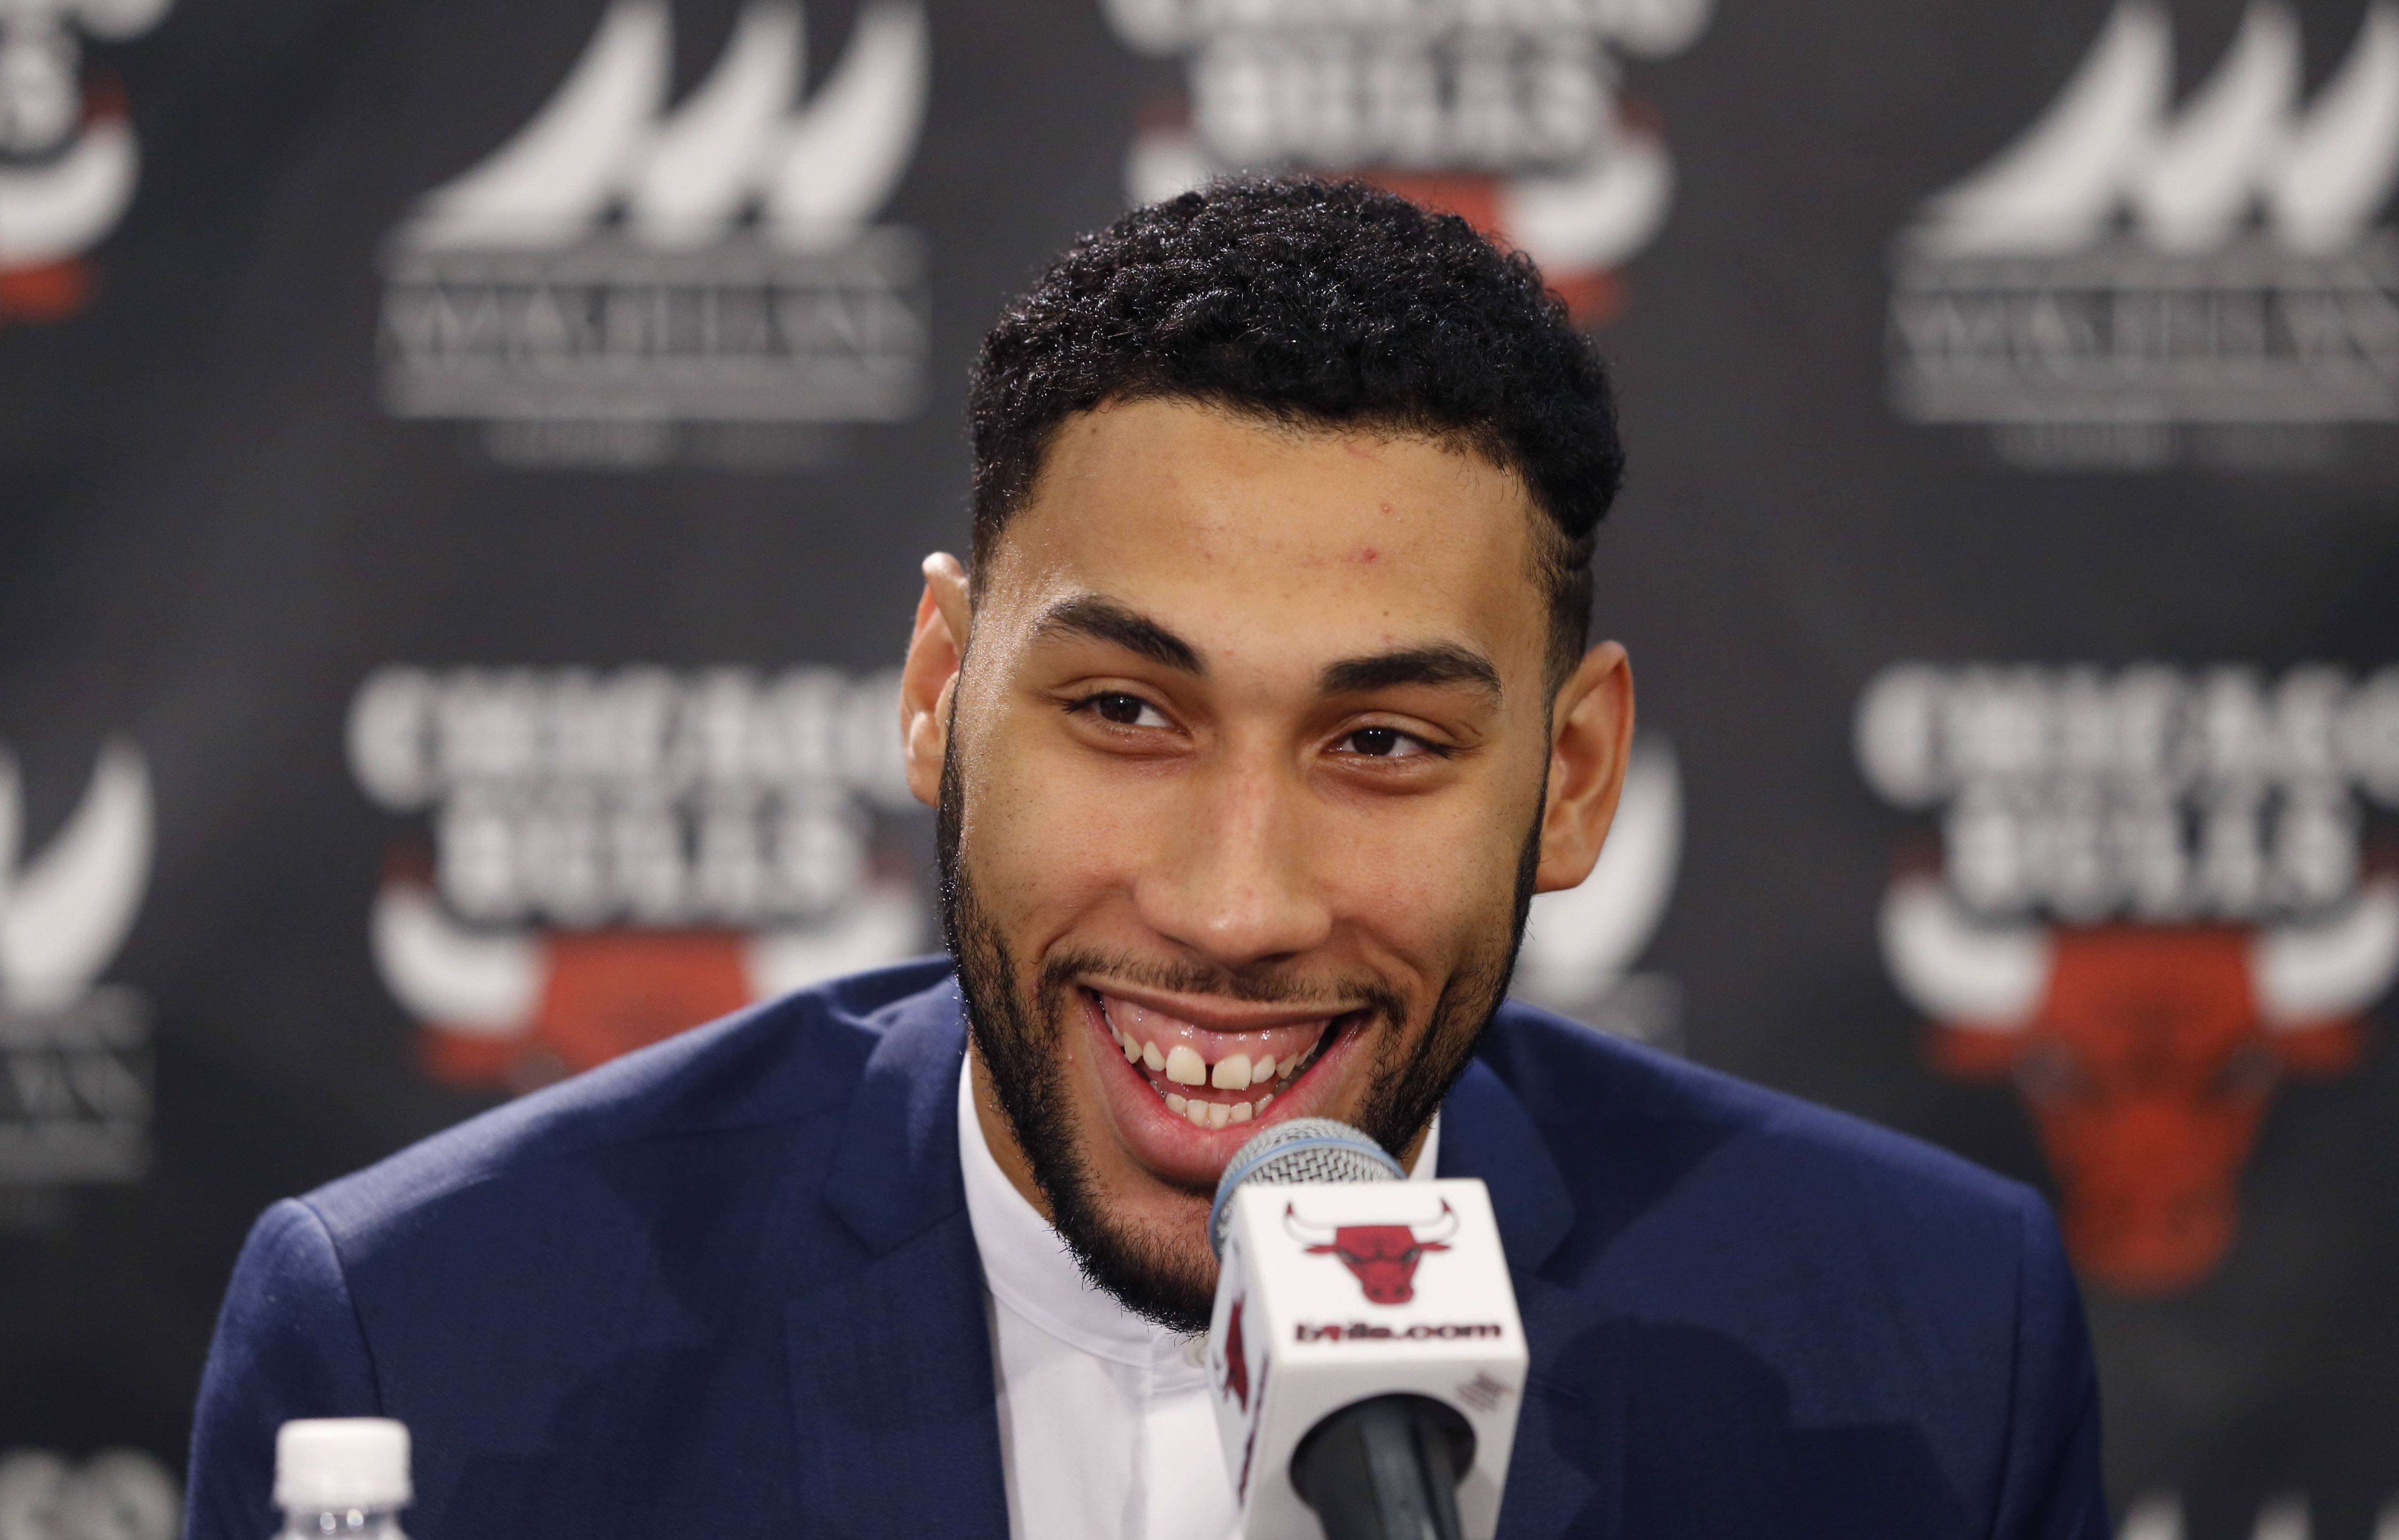 Chicago Bulls' first round draft pick Denzel Valentine, from Michigan State University, smiles during an NBA basketball news conference where the team introduced him Monday, June 27, 2016, in Chicago. (AP Photo/Charles Rex Arbogast)